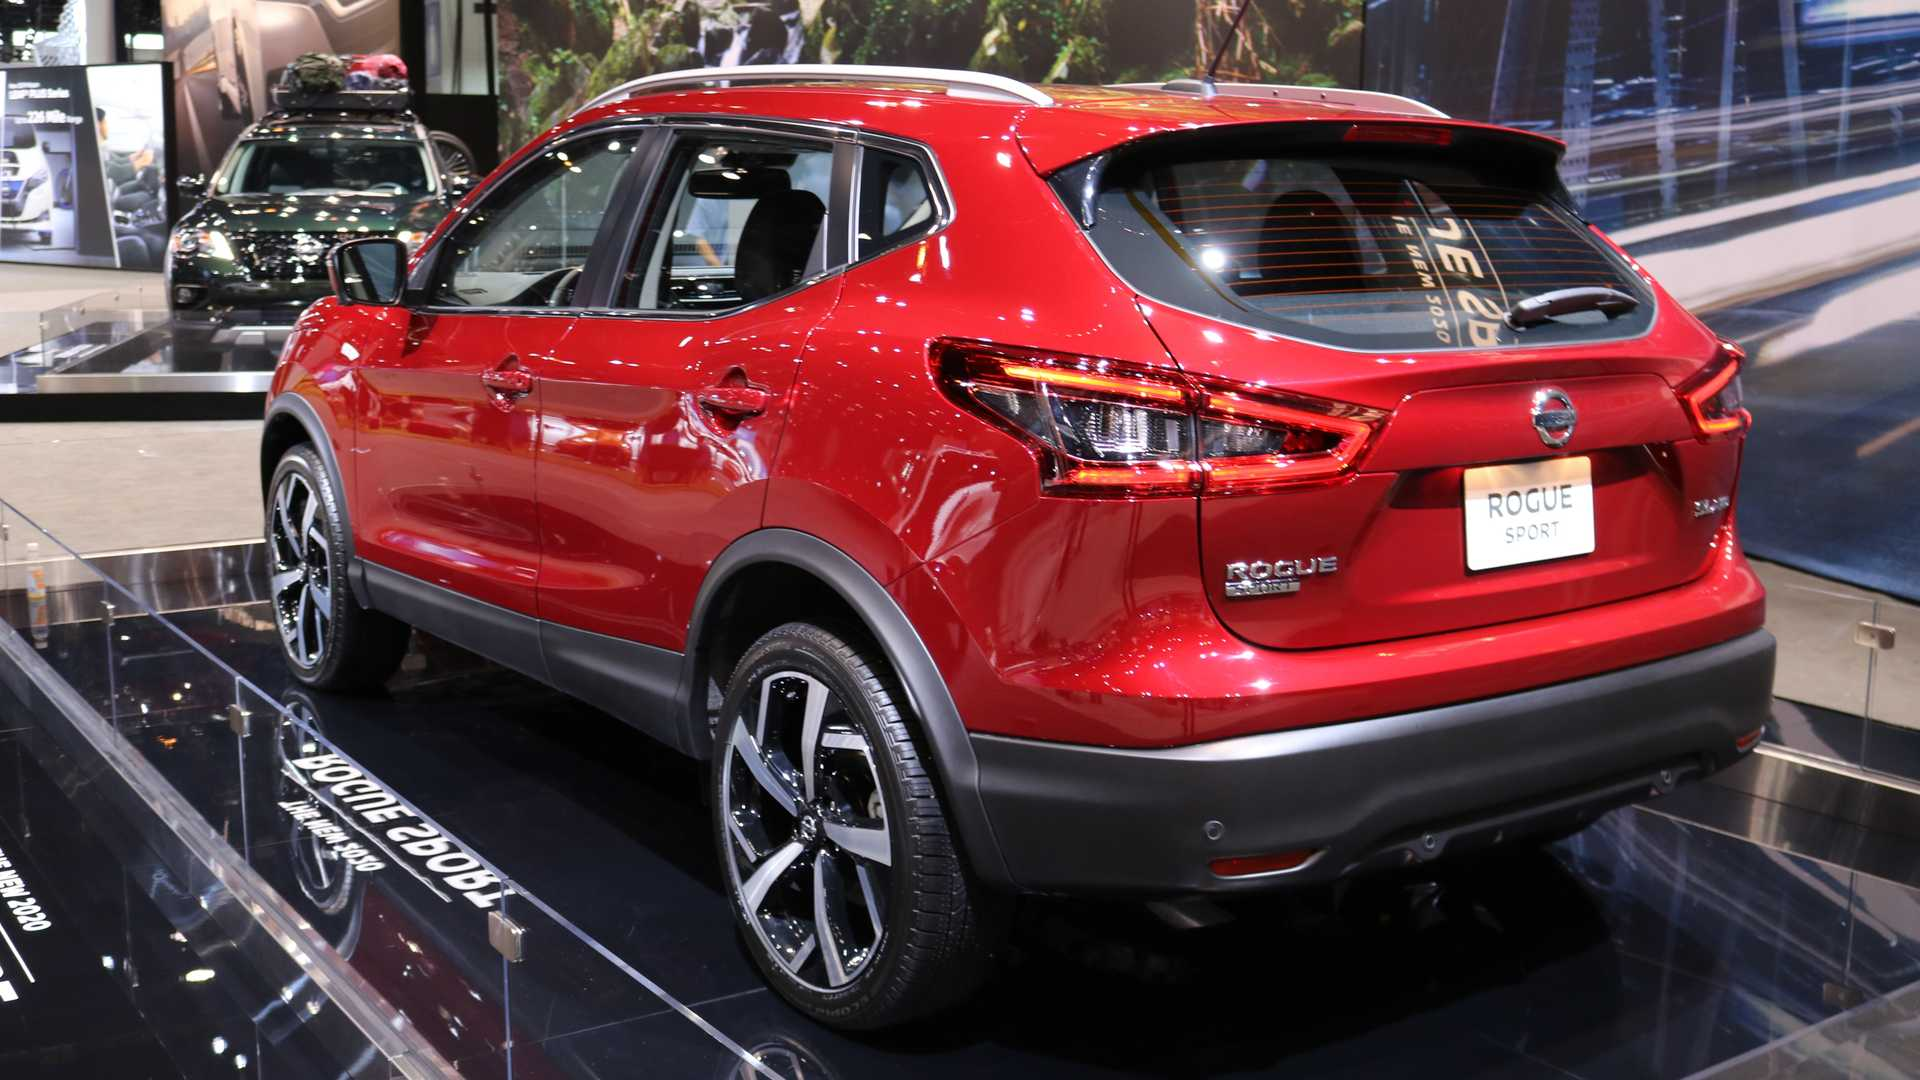 44 Gallery of Nissan Rogue 2020 Price Performance and New Engine for Nissan Rogue 2020 Price